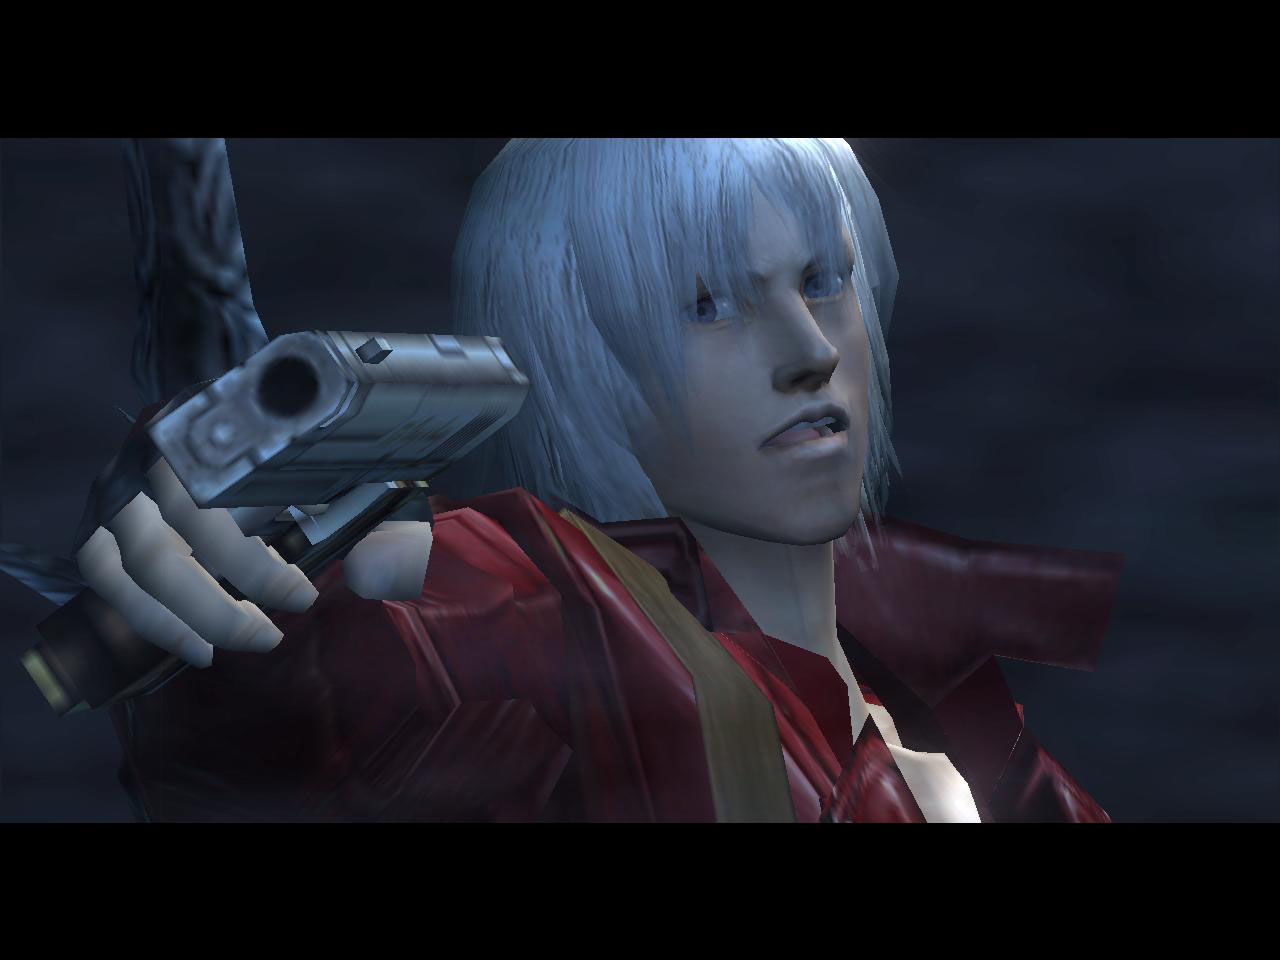 Devil may cry 3 dantes awakening first hour review the first devil may cry 3 pistol voltagebd Gallery